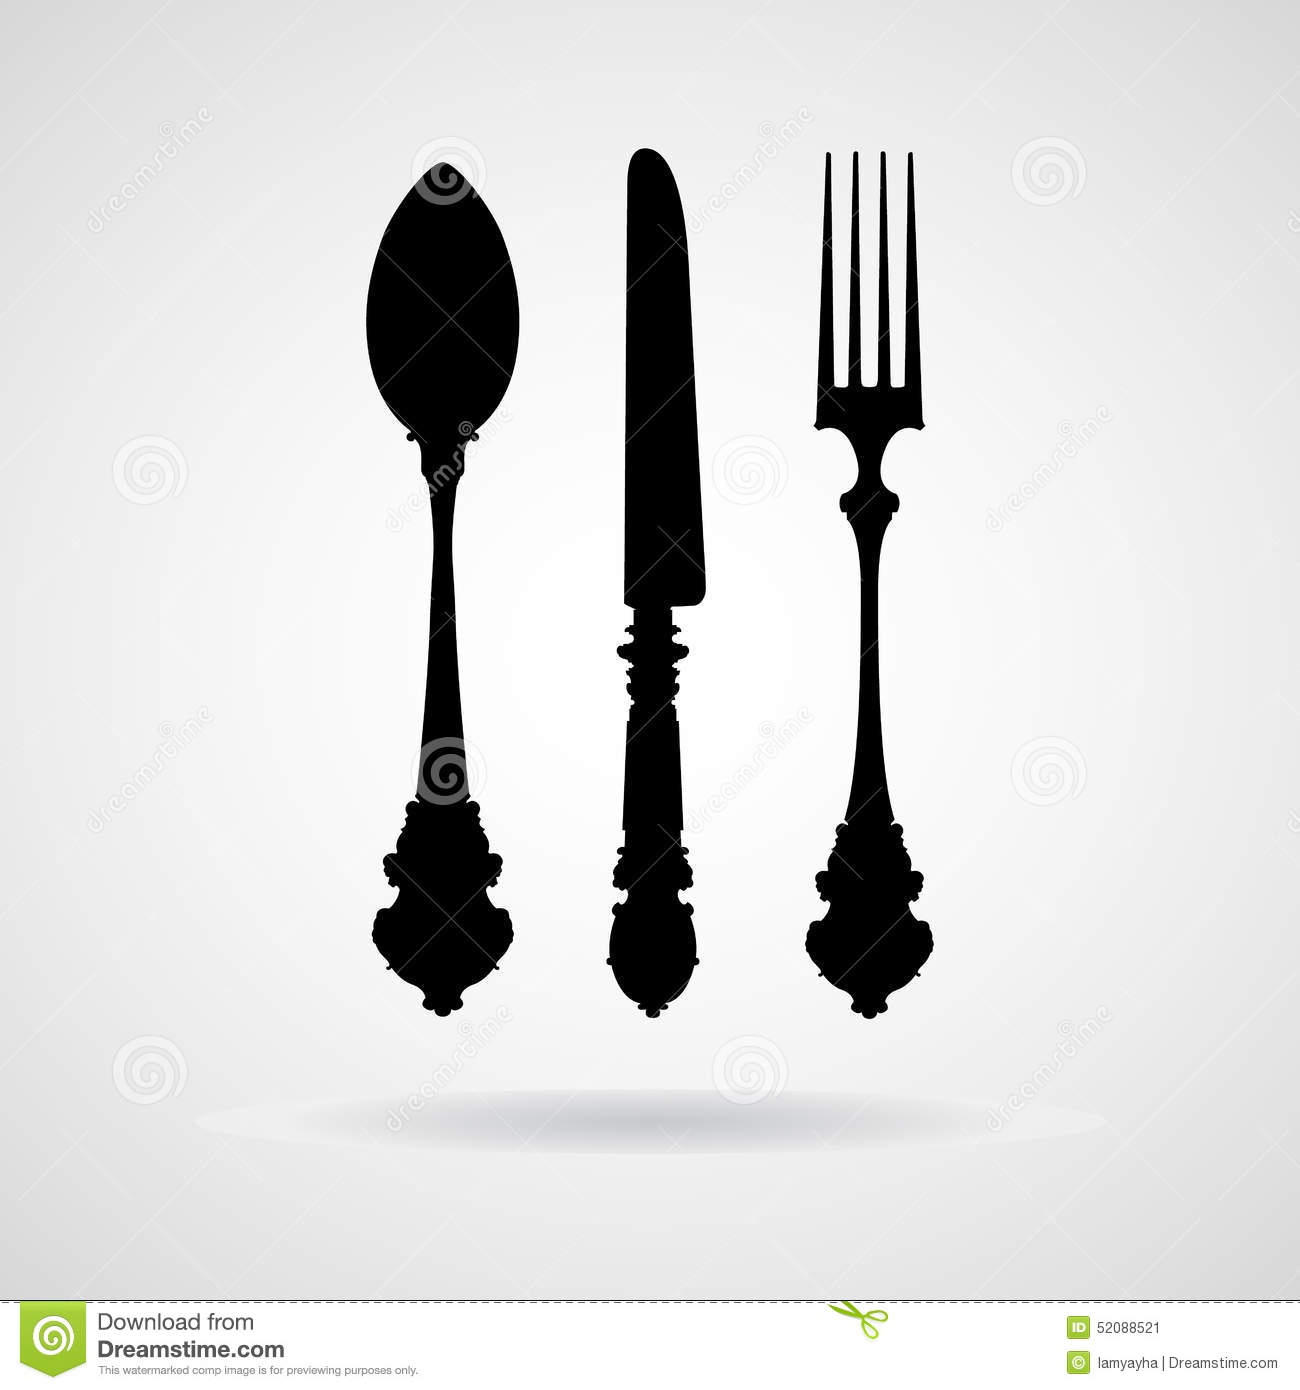 Fork Spoon Knife Vector And Icon EPS10 Stock Vector  : fork spoon knife vector icon eps great any use 52088521 from dreamstime.com size 1300 x 1390 jpeg 66kB